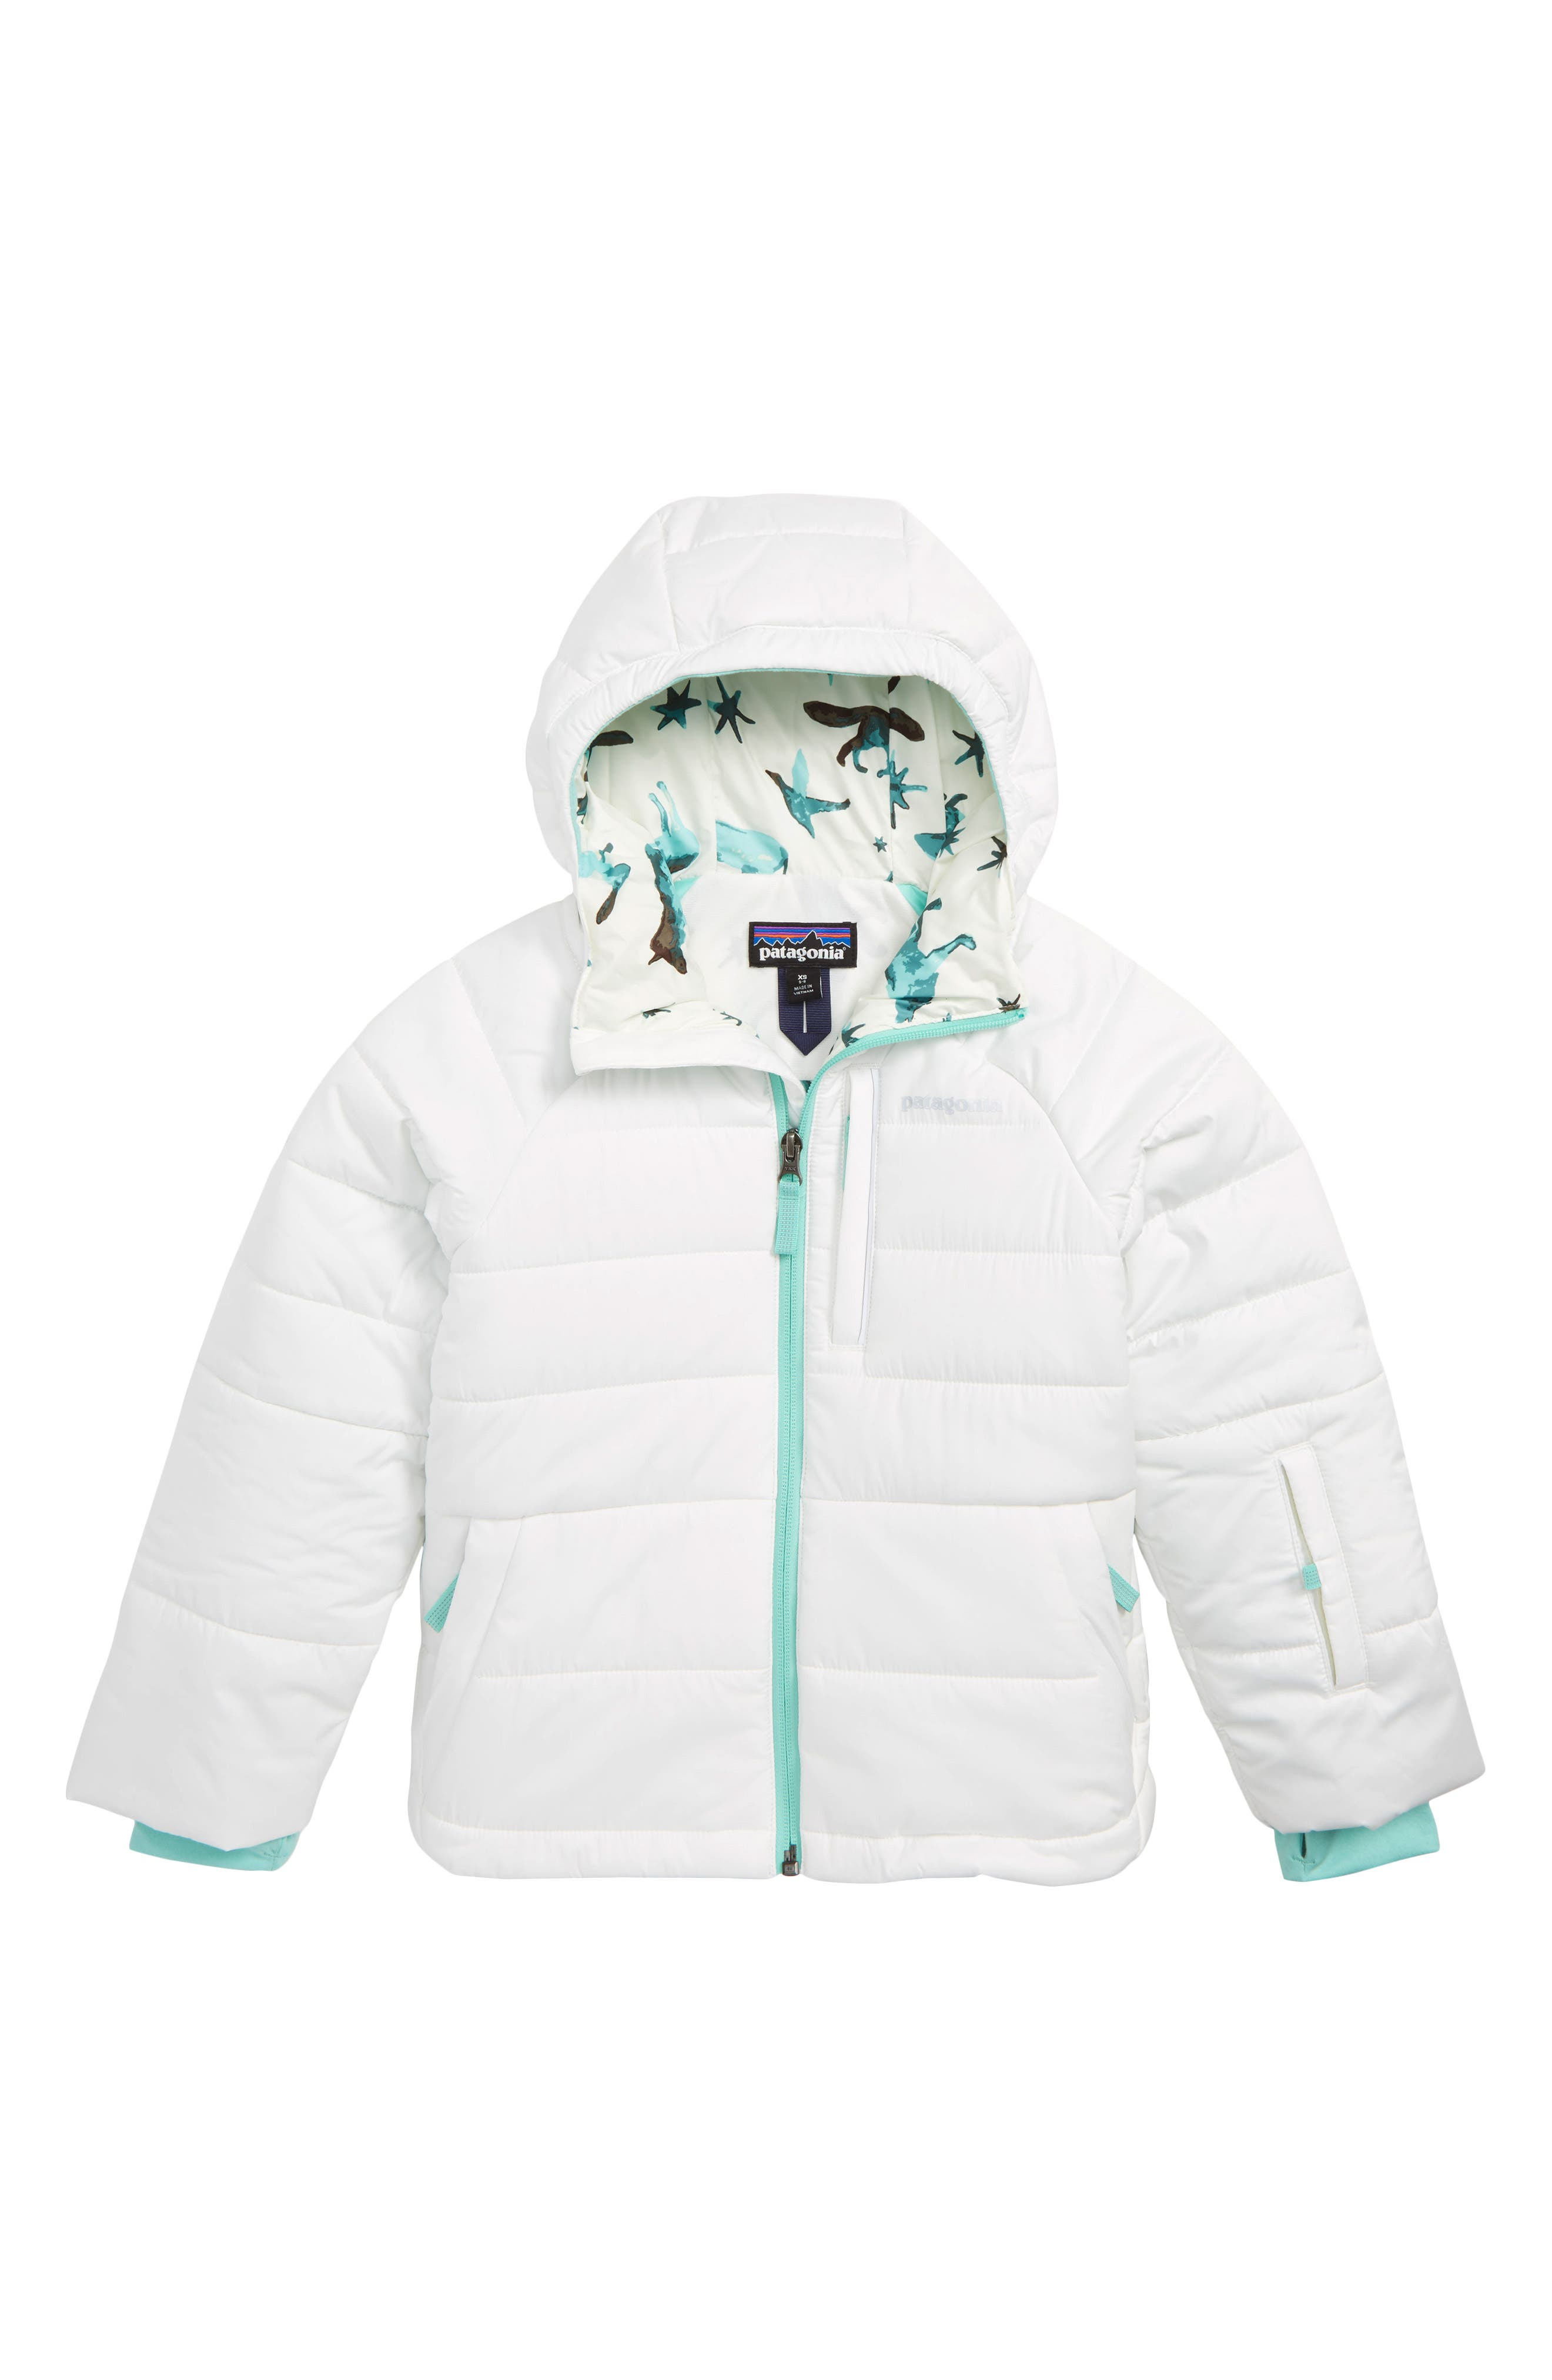 Aspen Grove Water Resistant Hooded Jacket,                         Main,                         color, NATURAL BIRCH WHITE